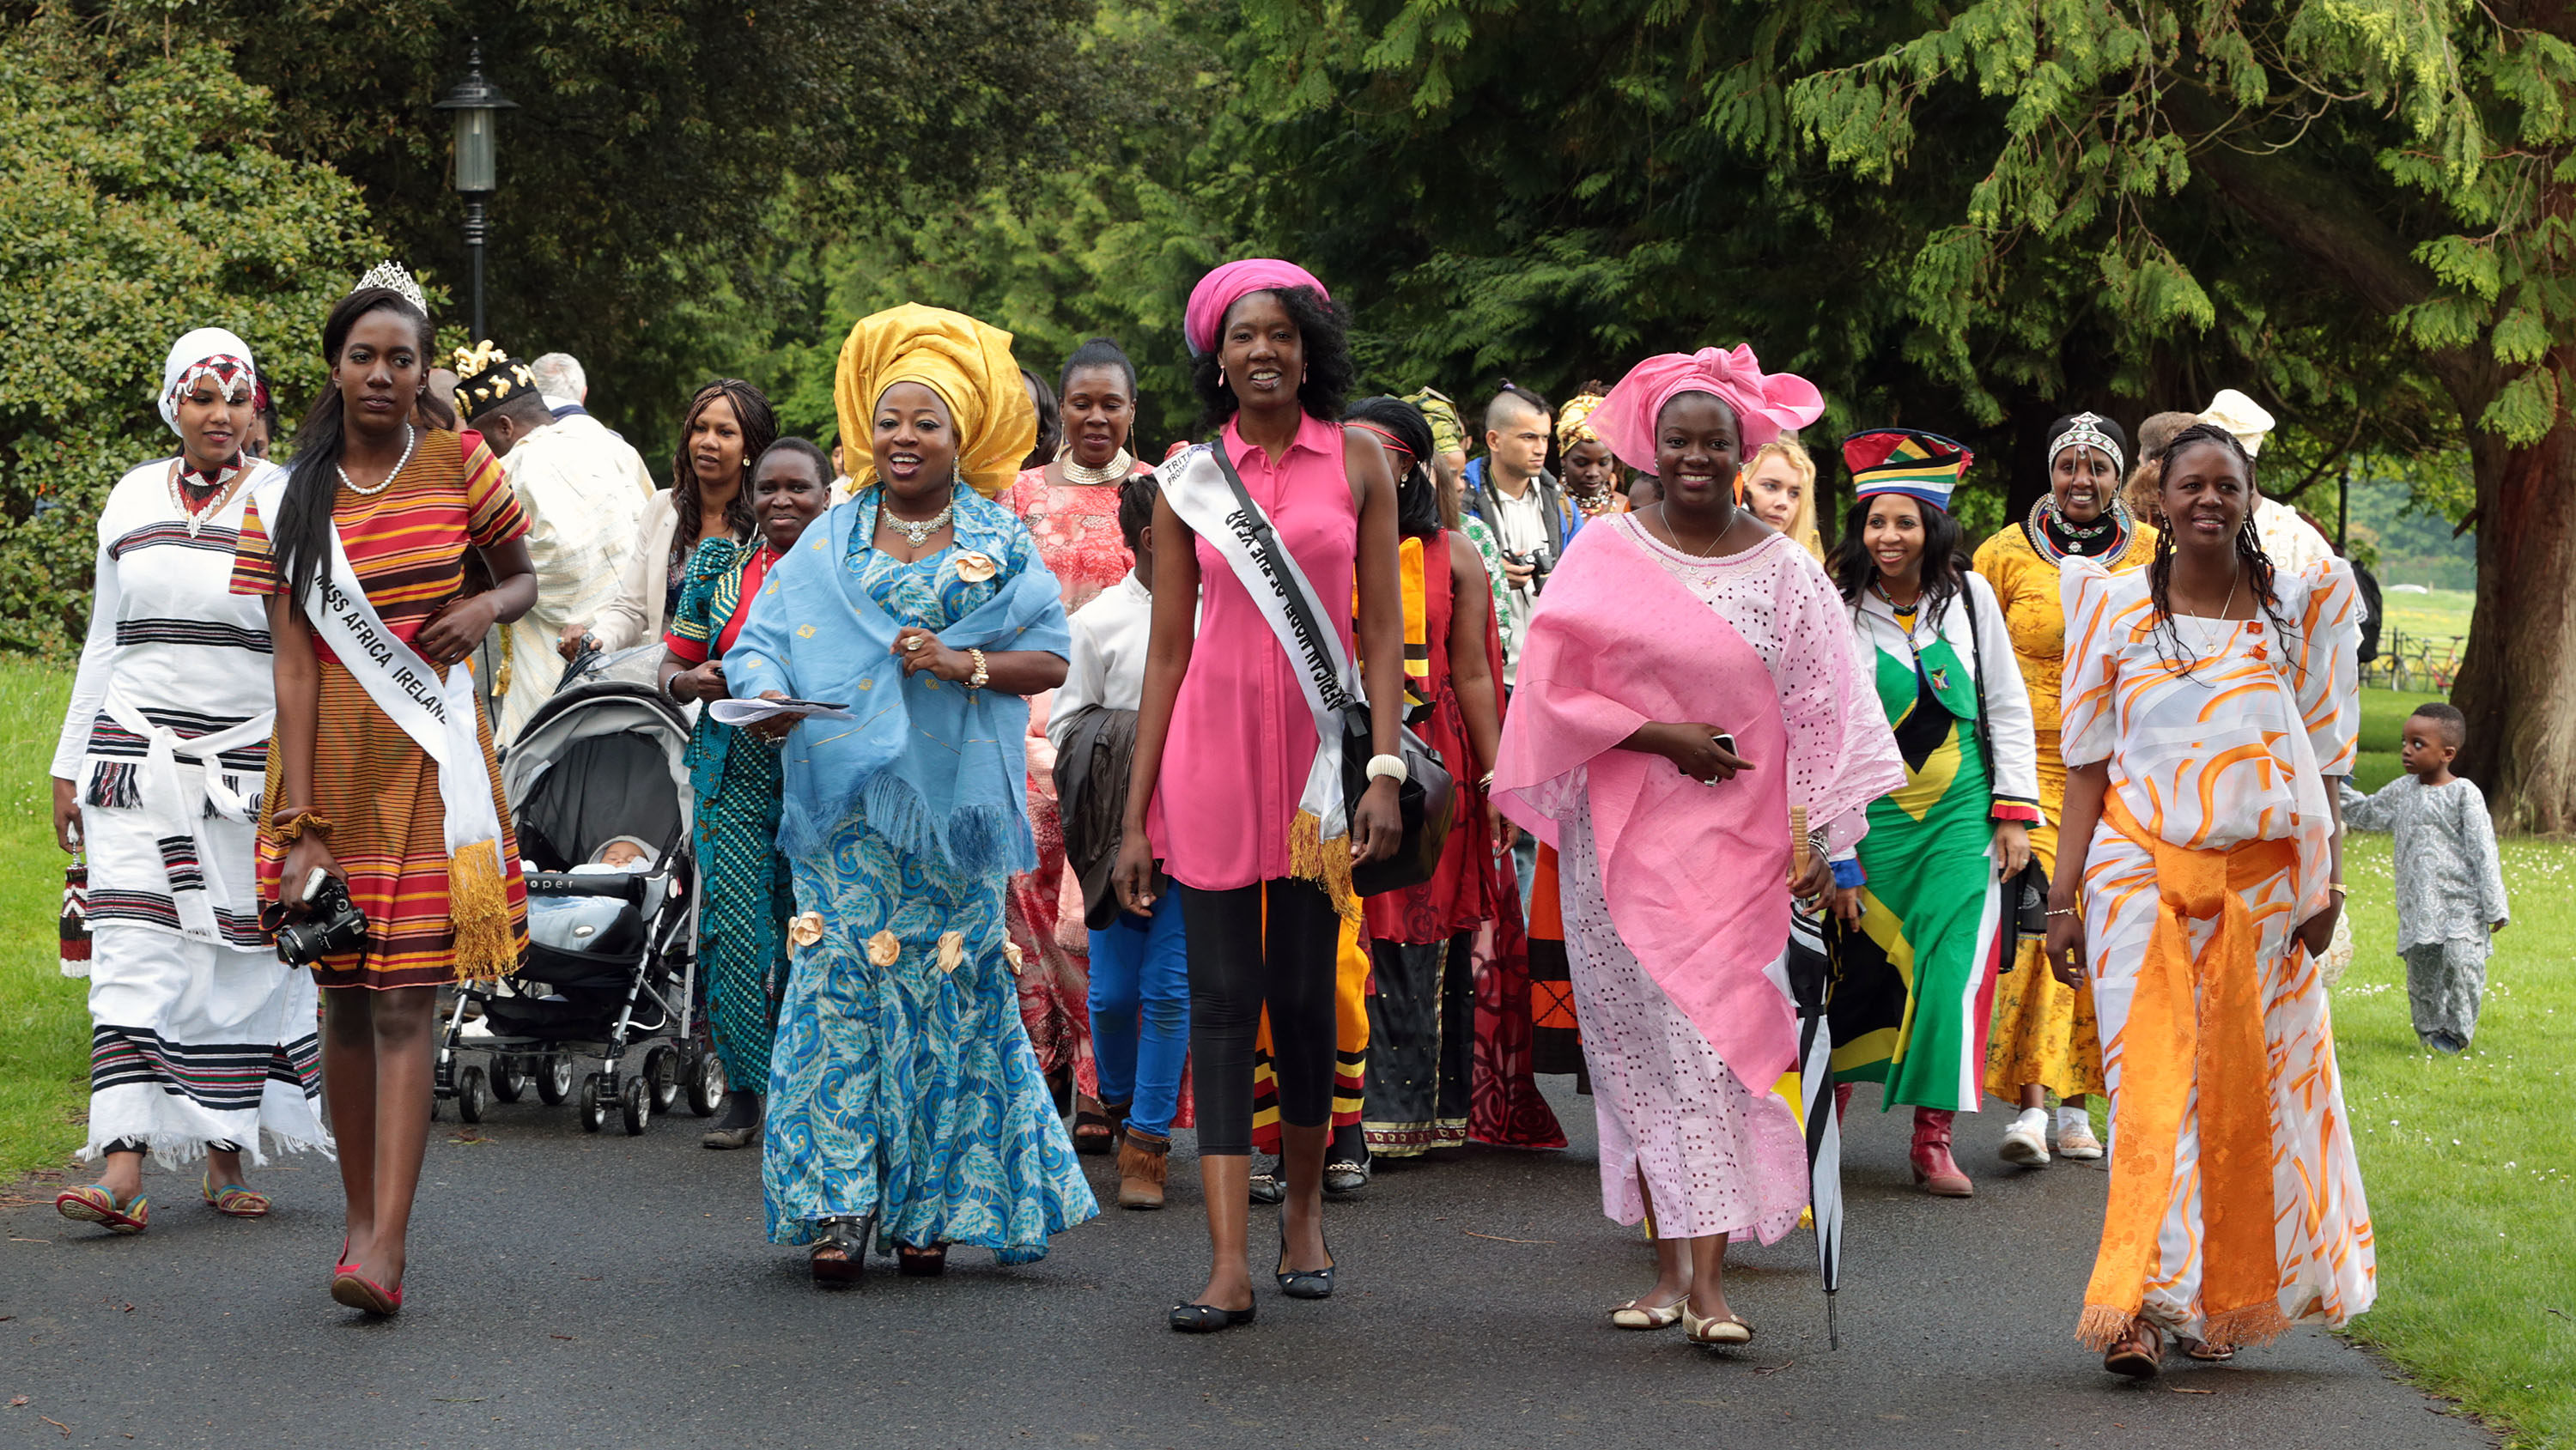 25/05/2014 REPRO FREE PIC SHOWS:  Pictured today (25.05.2014) at the flagshipAfrica Day 2014festival at Farmleigh Estate in Dublin's Phoenix Park were:  Flagship Africa Day 2014 Festival takes place at Farmleigh – Africa Day 2014 Celebrates Partnership between Ireland and Africa - Africa Day is supported by Irish Aid at the Department of Foreign Affairs and Trade. For more information, visitwww.africaday.ie. Contact:Sarah Harte / Catherine Heaney, DHR Communications, Tel:087-9858259 / 087-2309835 Irish Aid is the Government's programme for overseas development. It is managed by the Development Co-operation Division of the Department of Foreign Affairs and Trade. Further information is available atwww.irishaid.ie.Check out Africa Day on social media: on Twitter@AfricaDay, hashtag #africaday; on Facebook atwww.facebook.com/africadayireland. PIC: CONOR Ó MEARÁIN  NO FEE